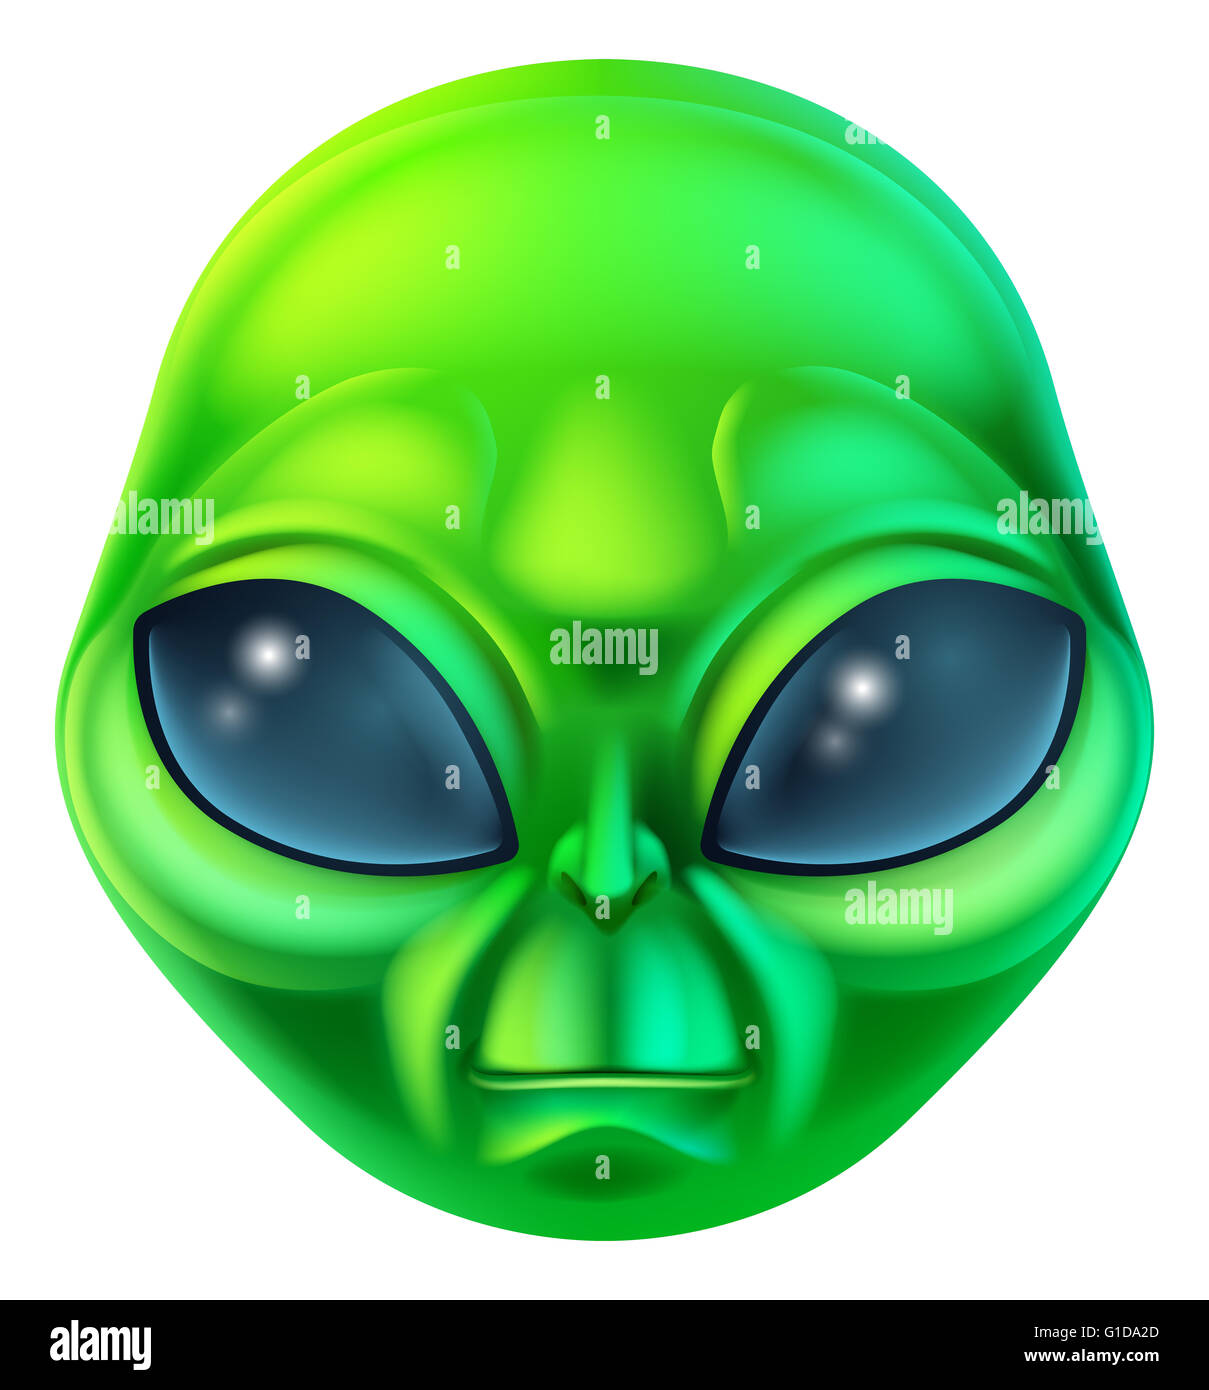 A friendly green cartoon alien extraterrestrial character - Stock Image